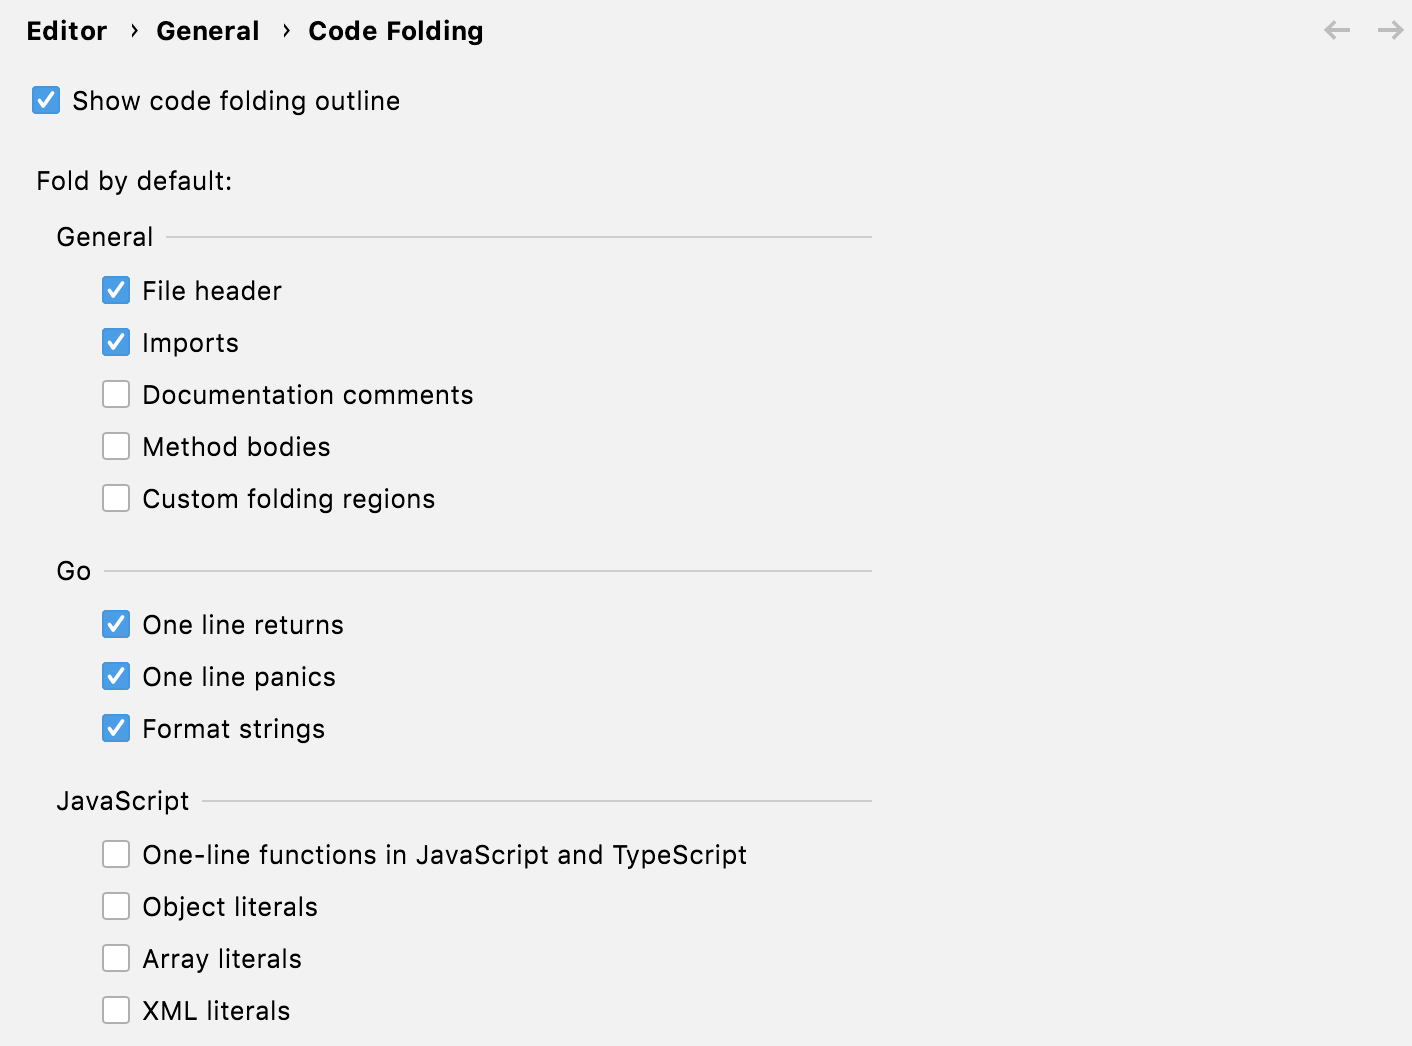 code folding for one-line returns/panics and formatted strings